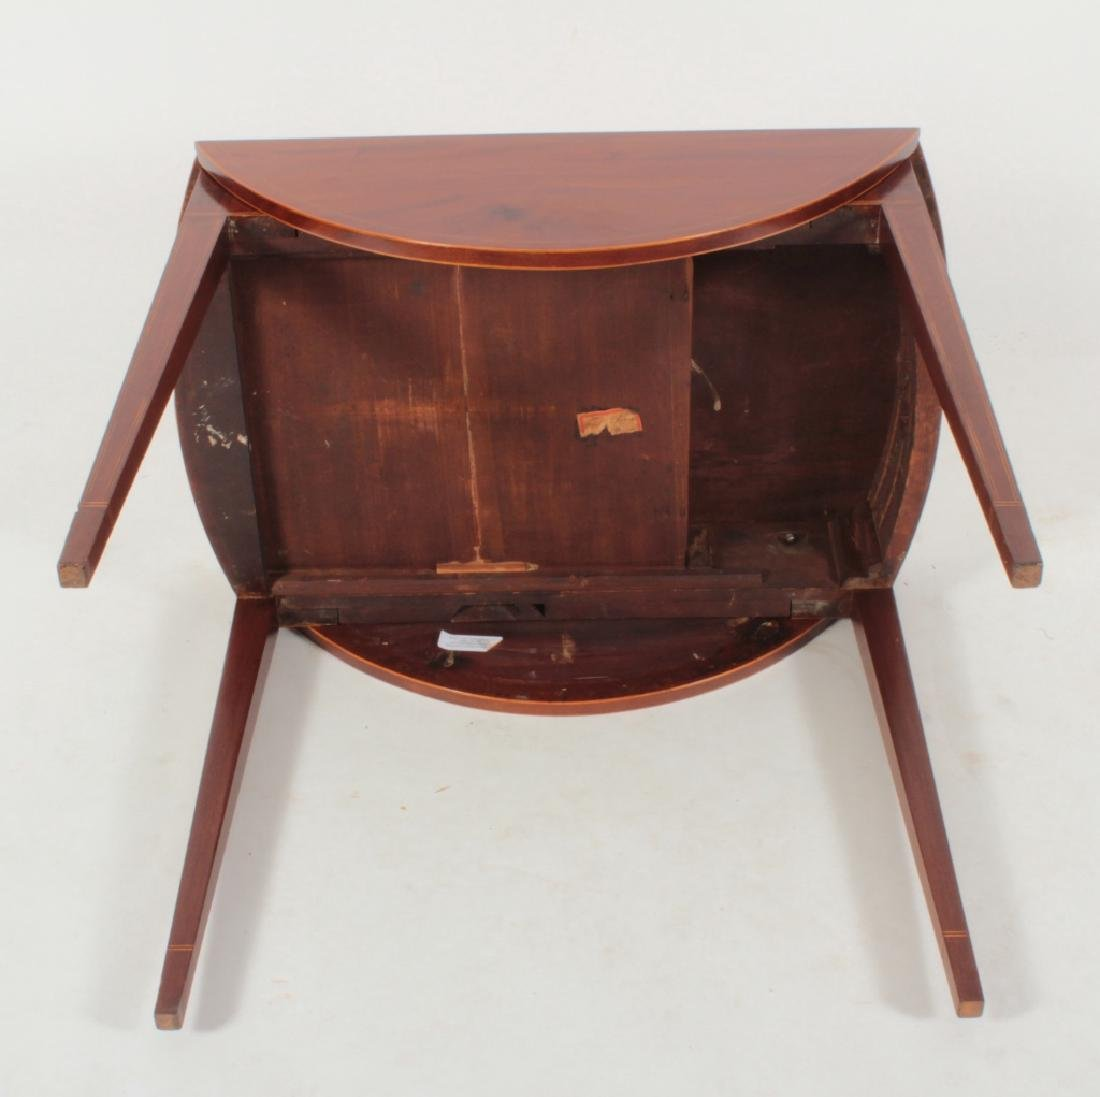 Hepplewhite Inlaid Mahogany Drop-Leaf Table c.1820 - 9